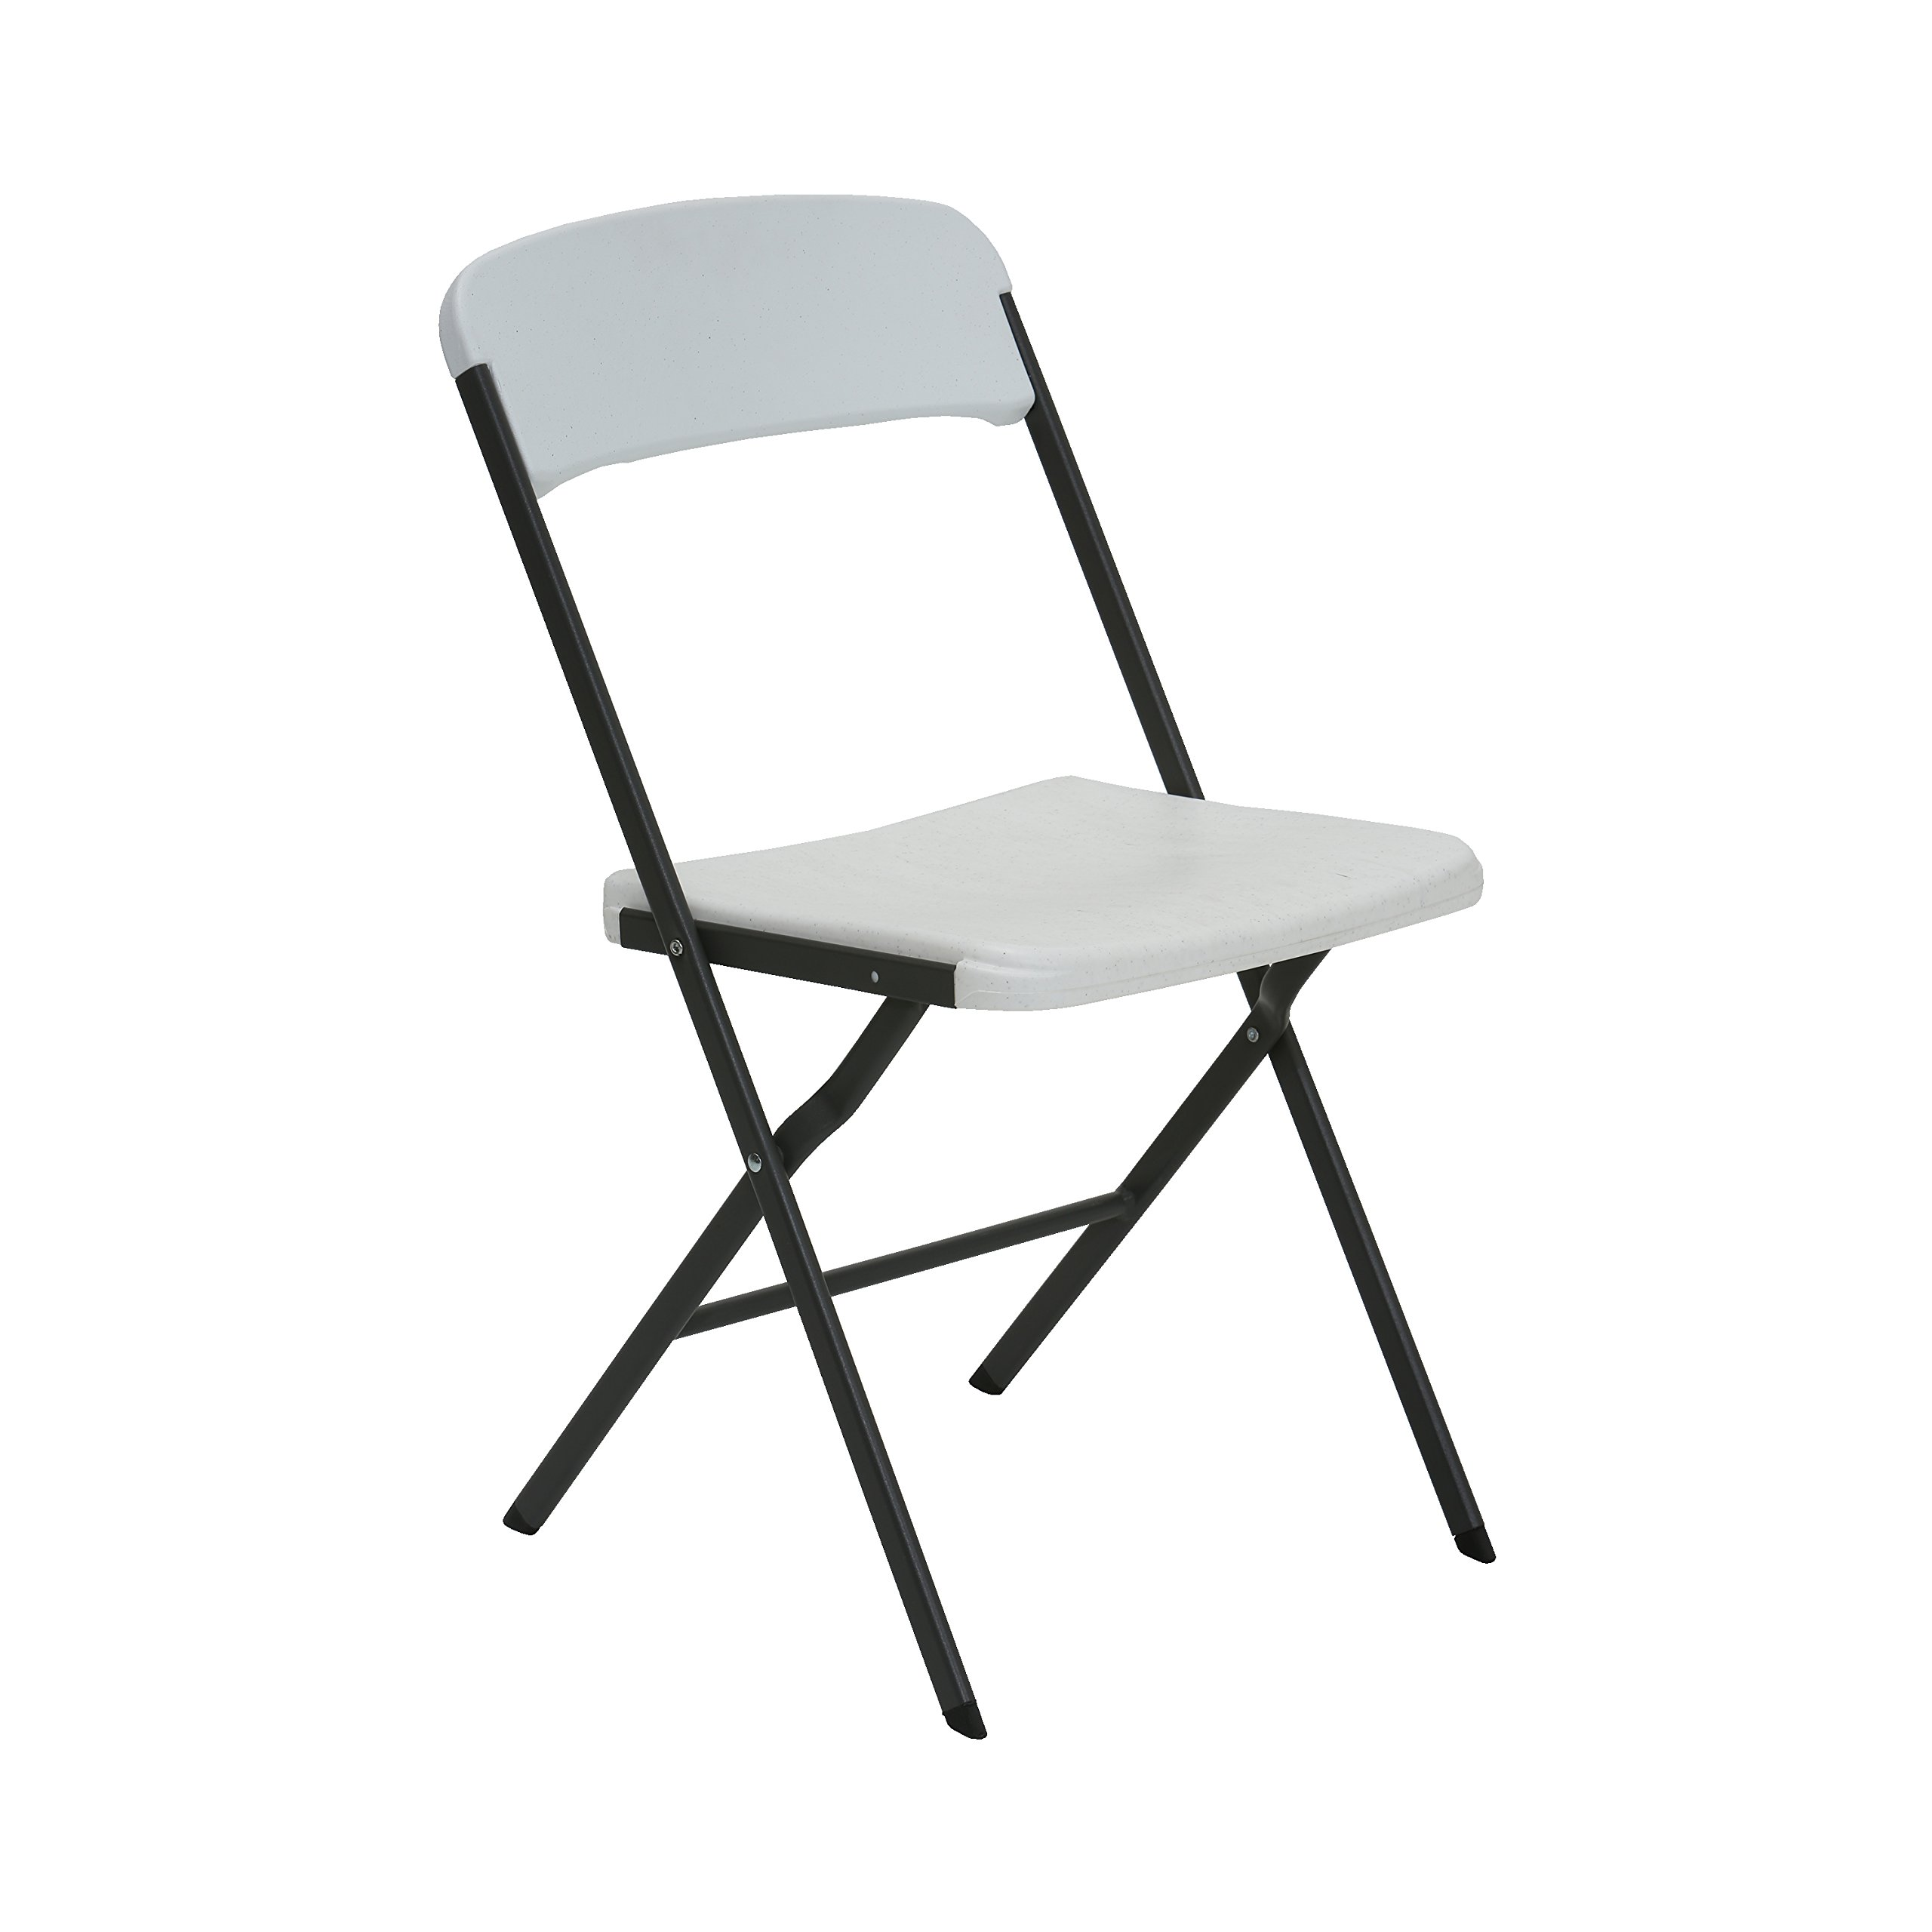 Lifetime 684016 ContemporaryResidentialFolding Chair, White Granite, Pack of 6 by Lifetime